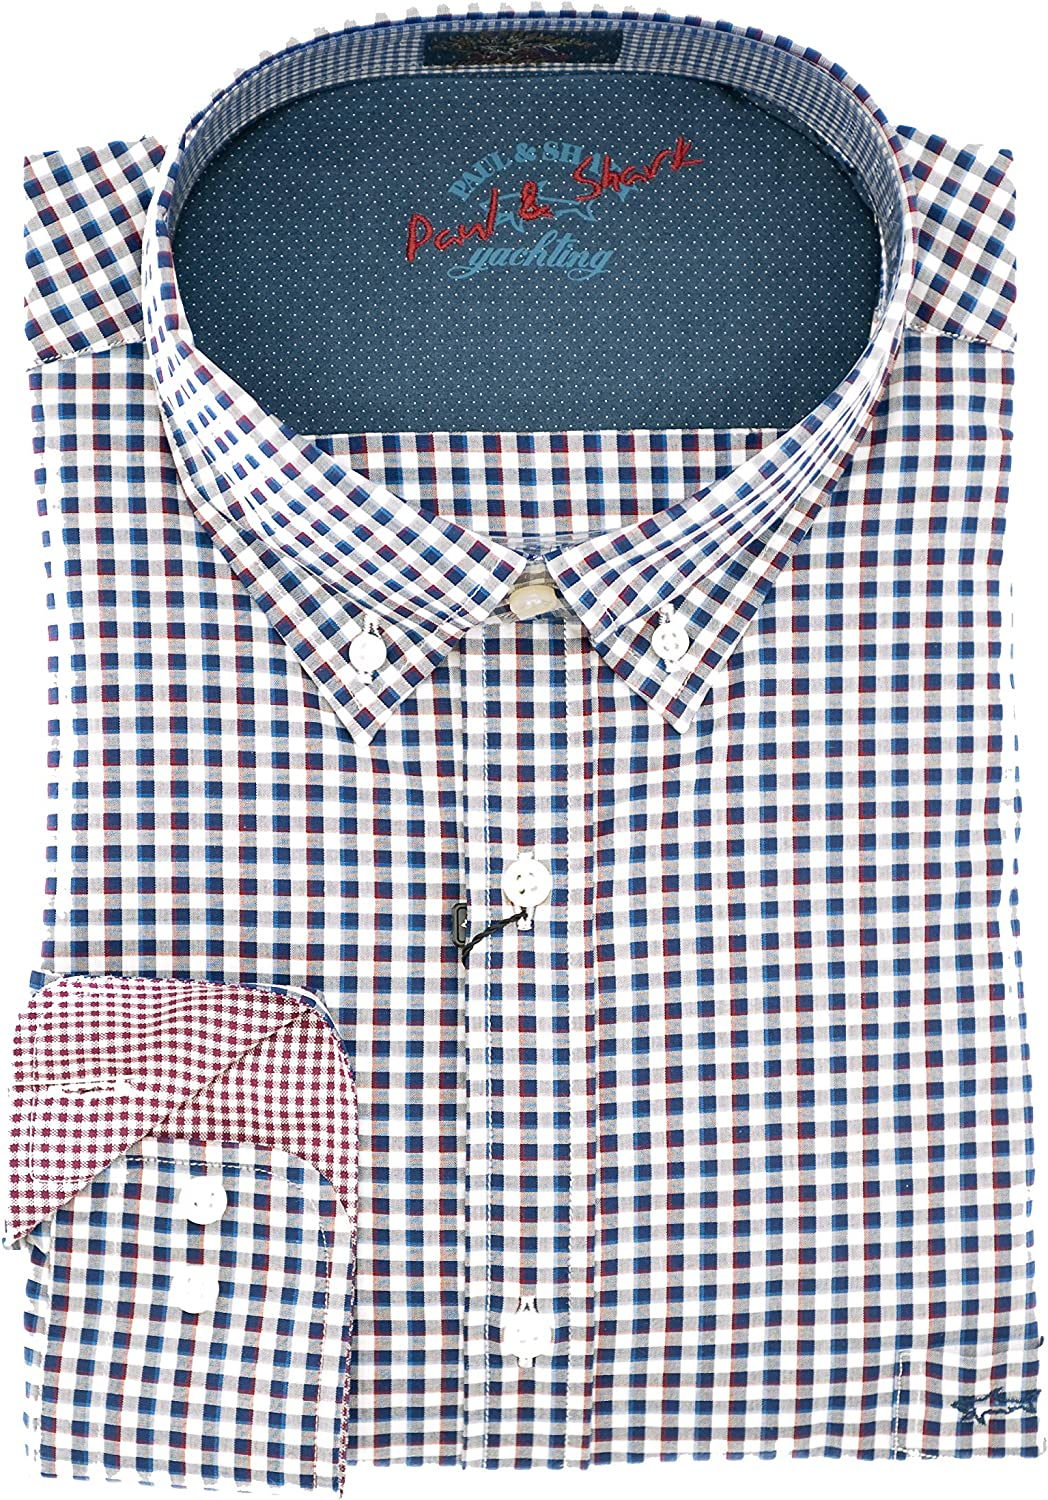 PAUL & SHARK Camisa Regular Fit BLU A Quadri 43: Amazon.es: Ropa y accesorios